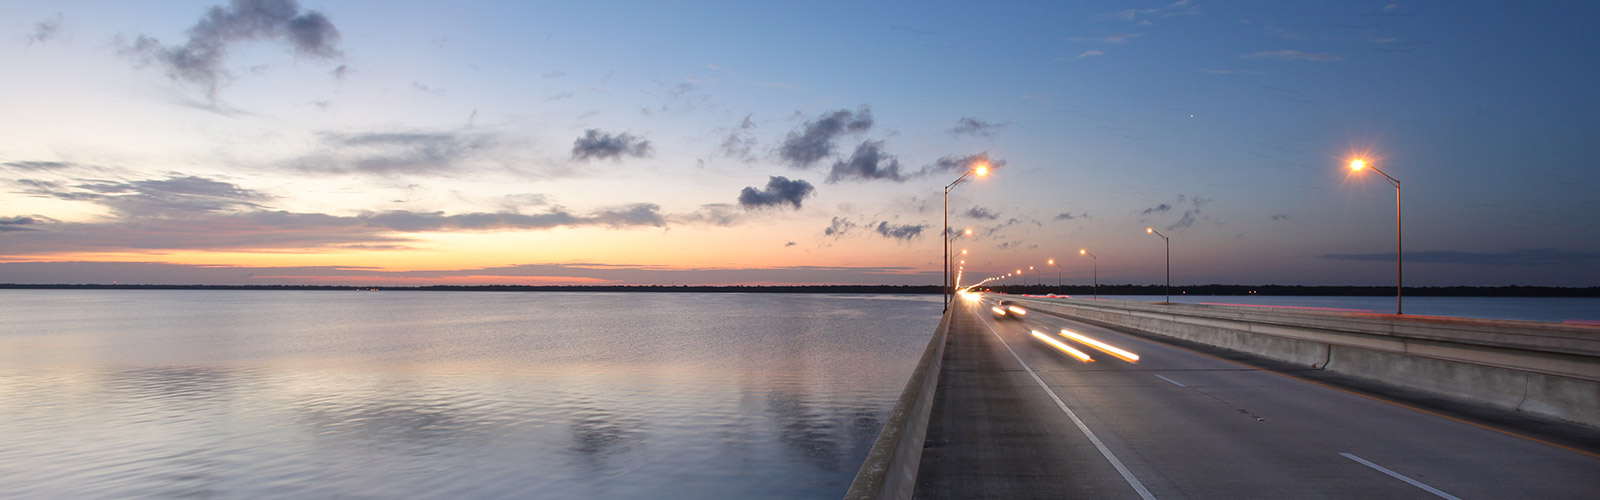 Central Florida Expressway bridge at dusk